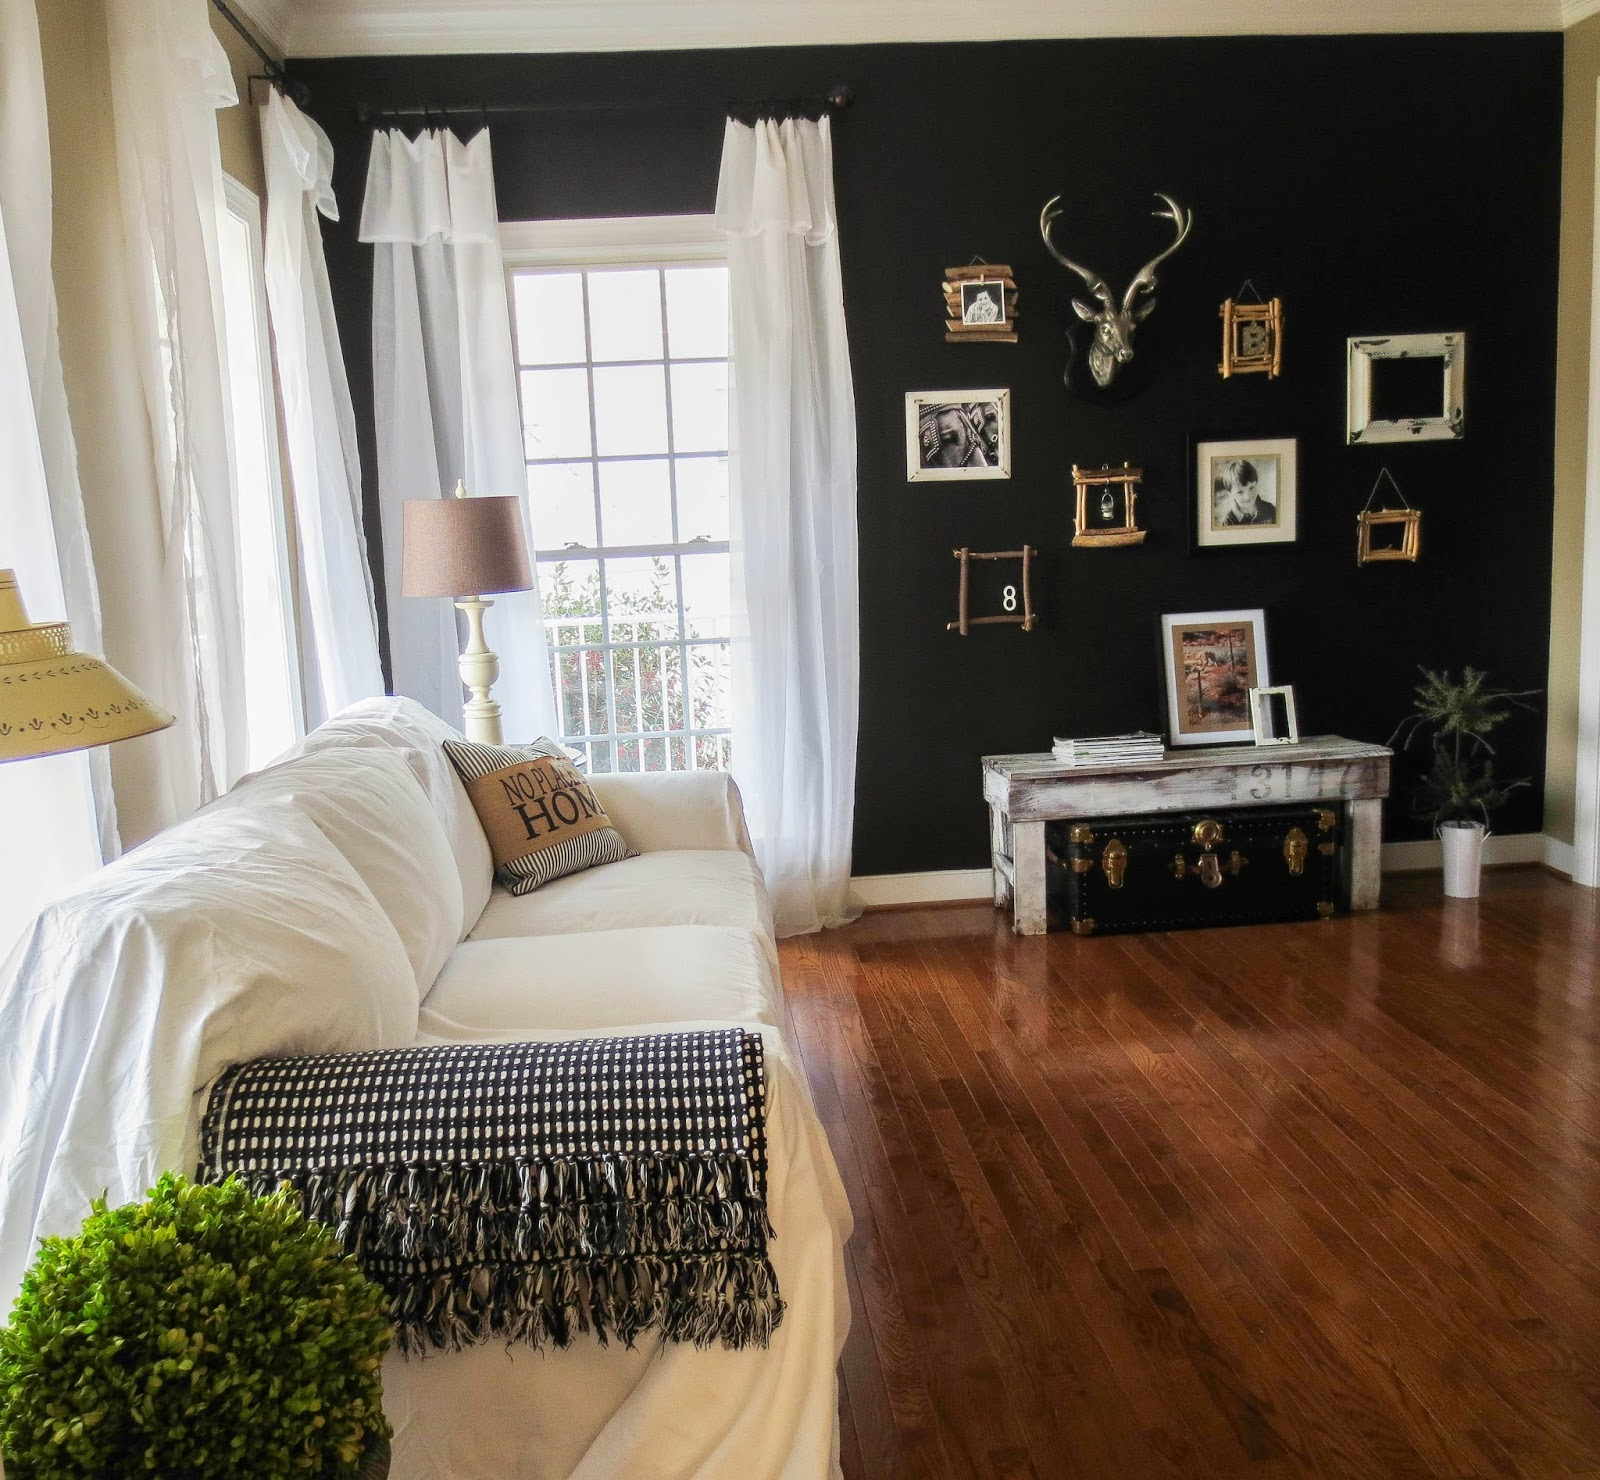 Painting A Room With An Accent Wall: Down To Earth Style: Paint A Black Accent Wall